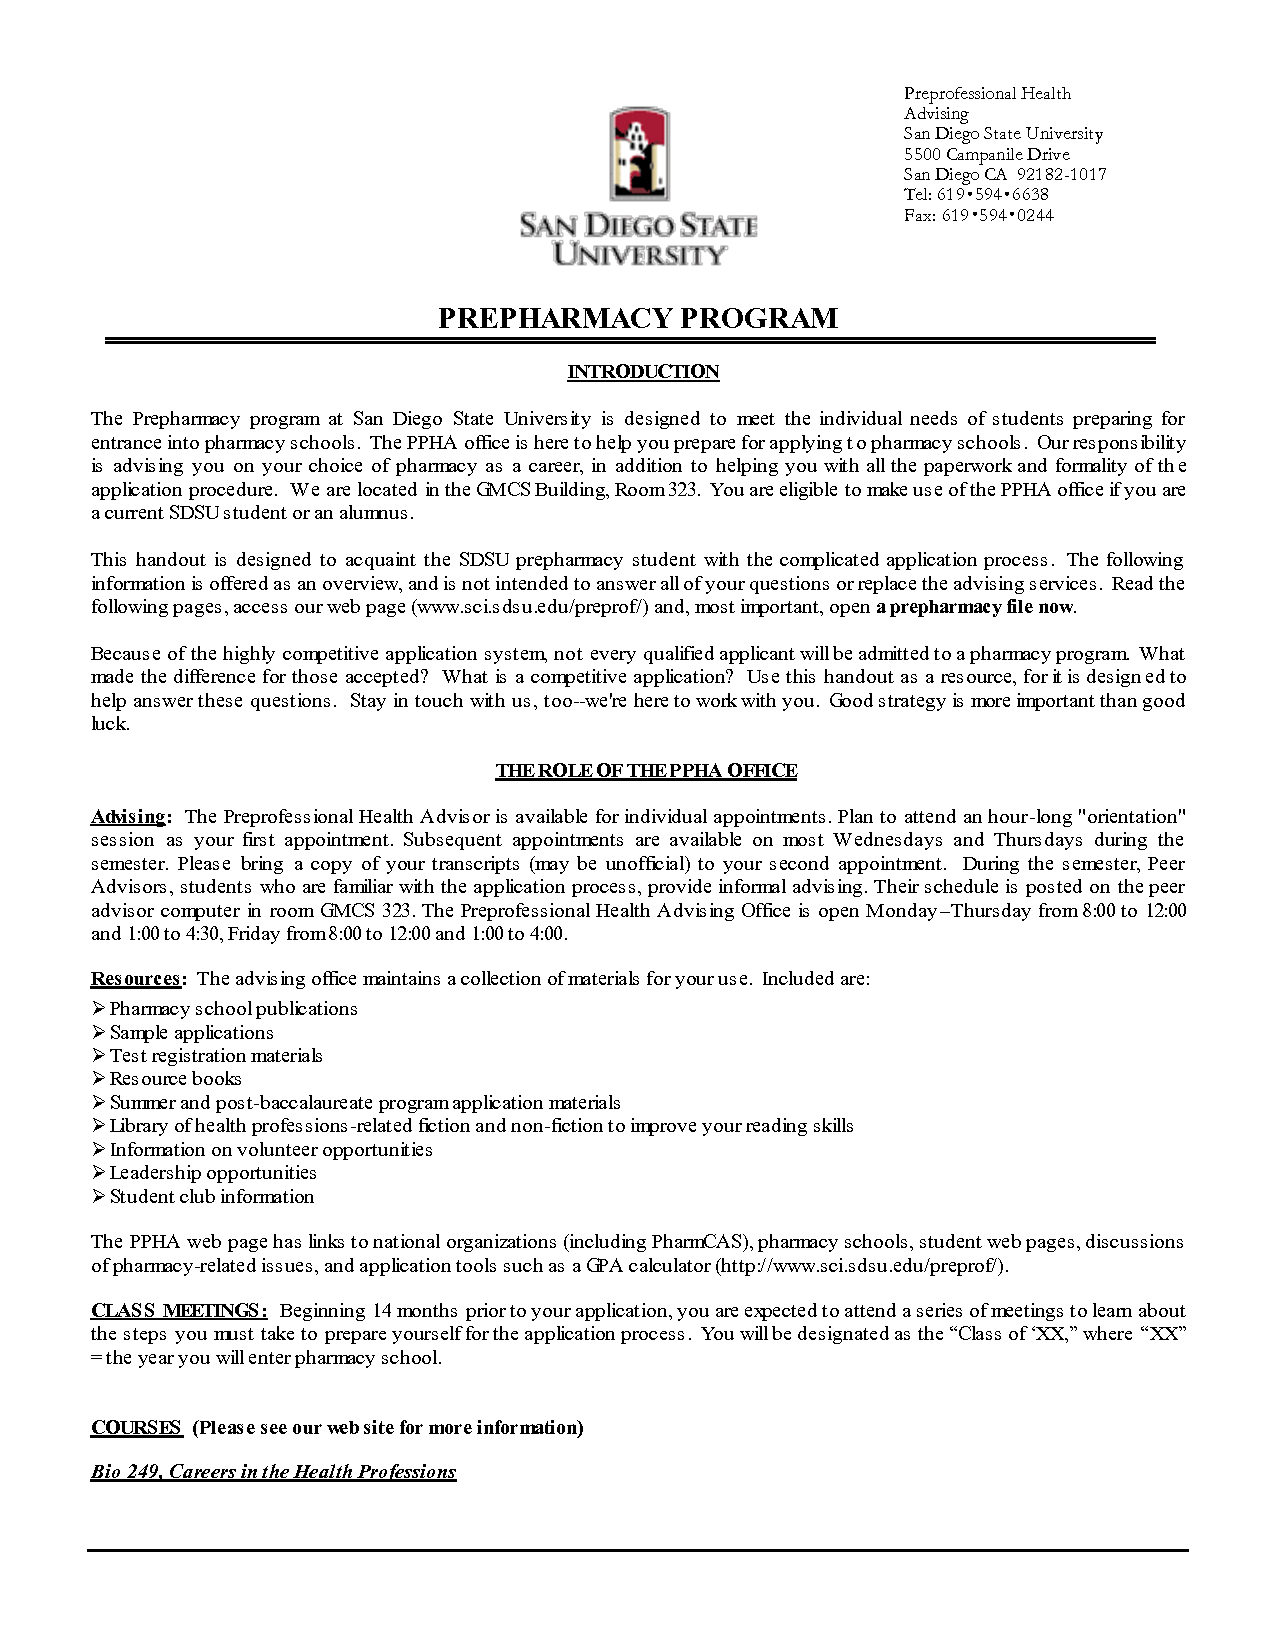 Reference Request Letter Template - Pharmcas Essay Sample Personal Narrative Essays Cover Letter